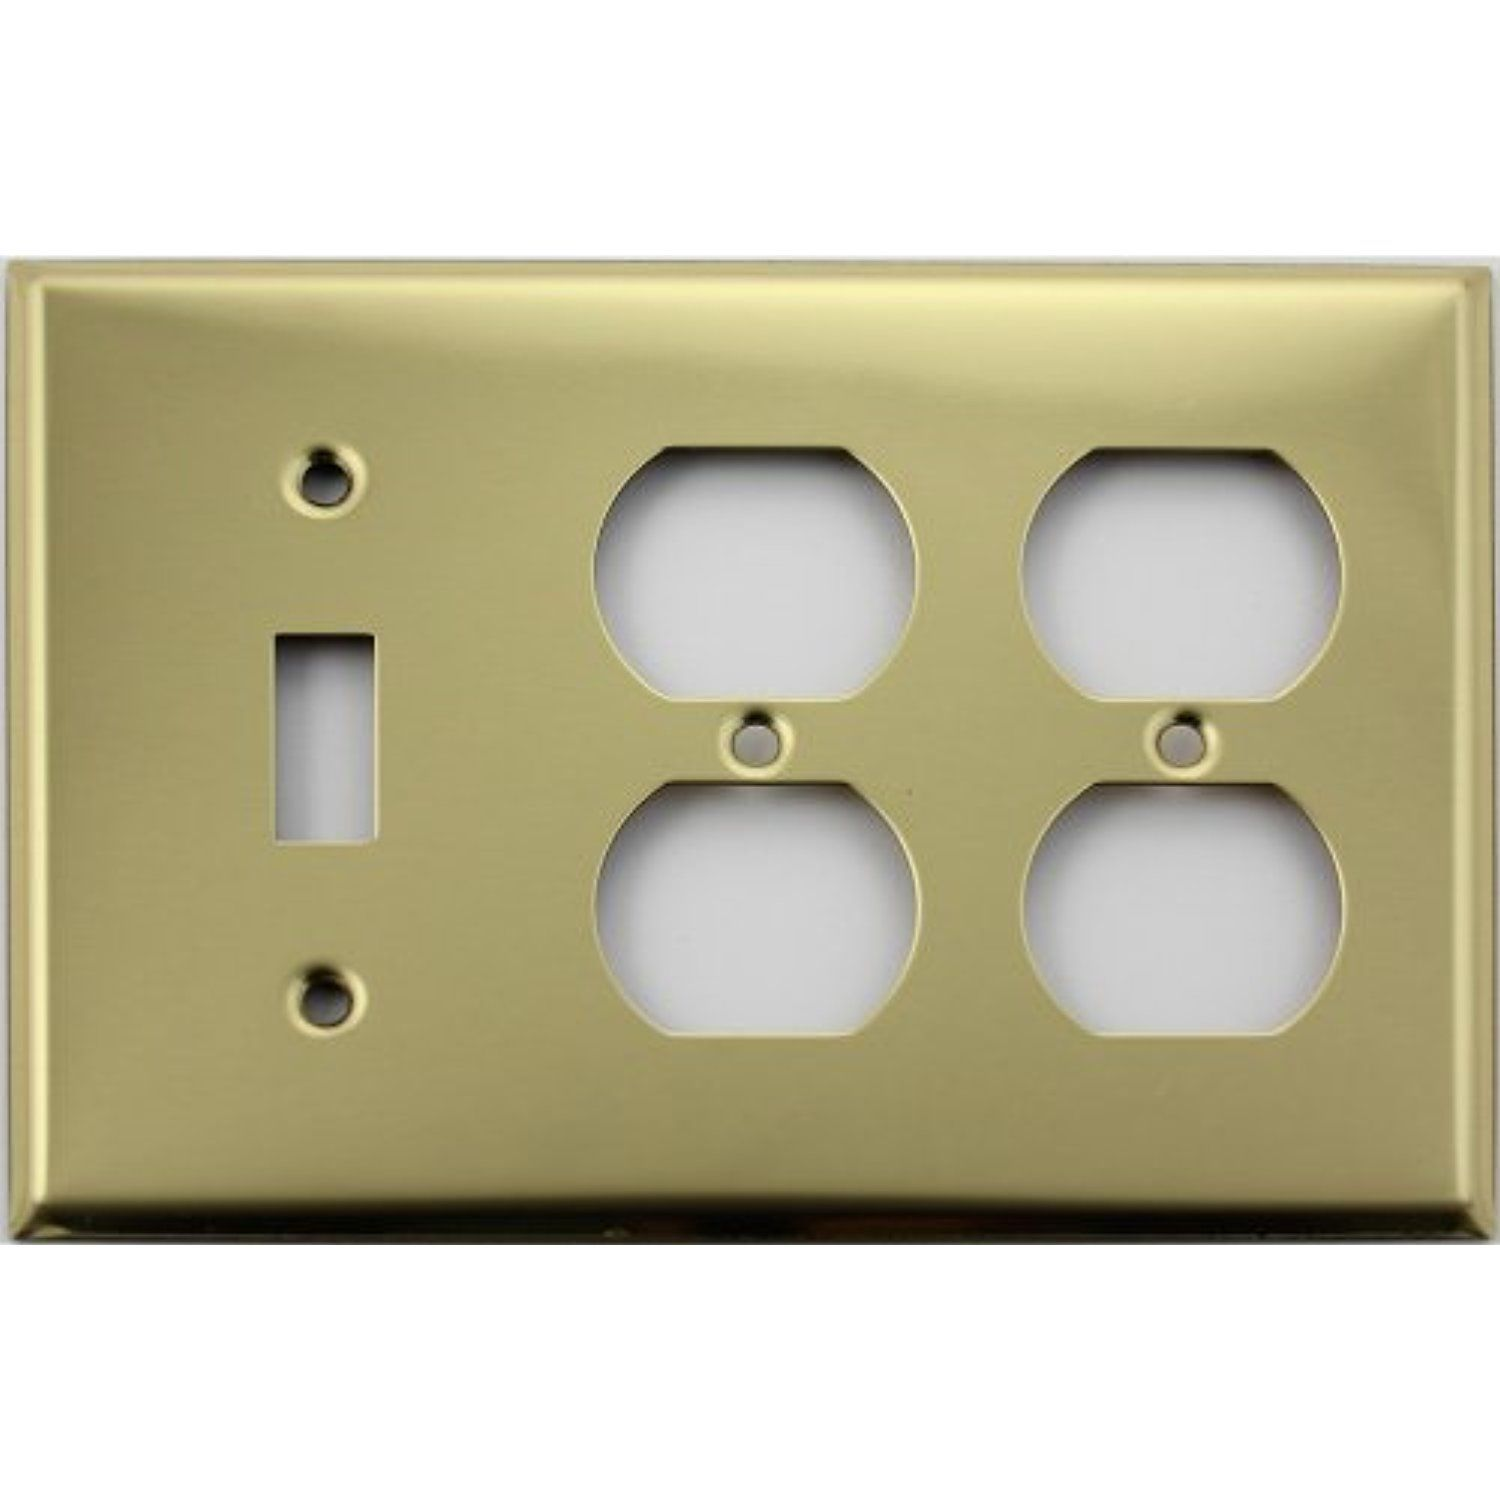 Polished Brass Three Gang Wall Plate One Toggle Two Duplex Outlets You Can Get More Details By Clicki Plates On Wall Polished Brass Electricity